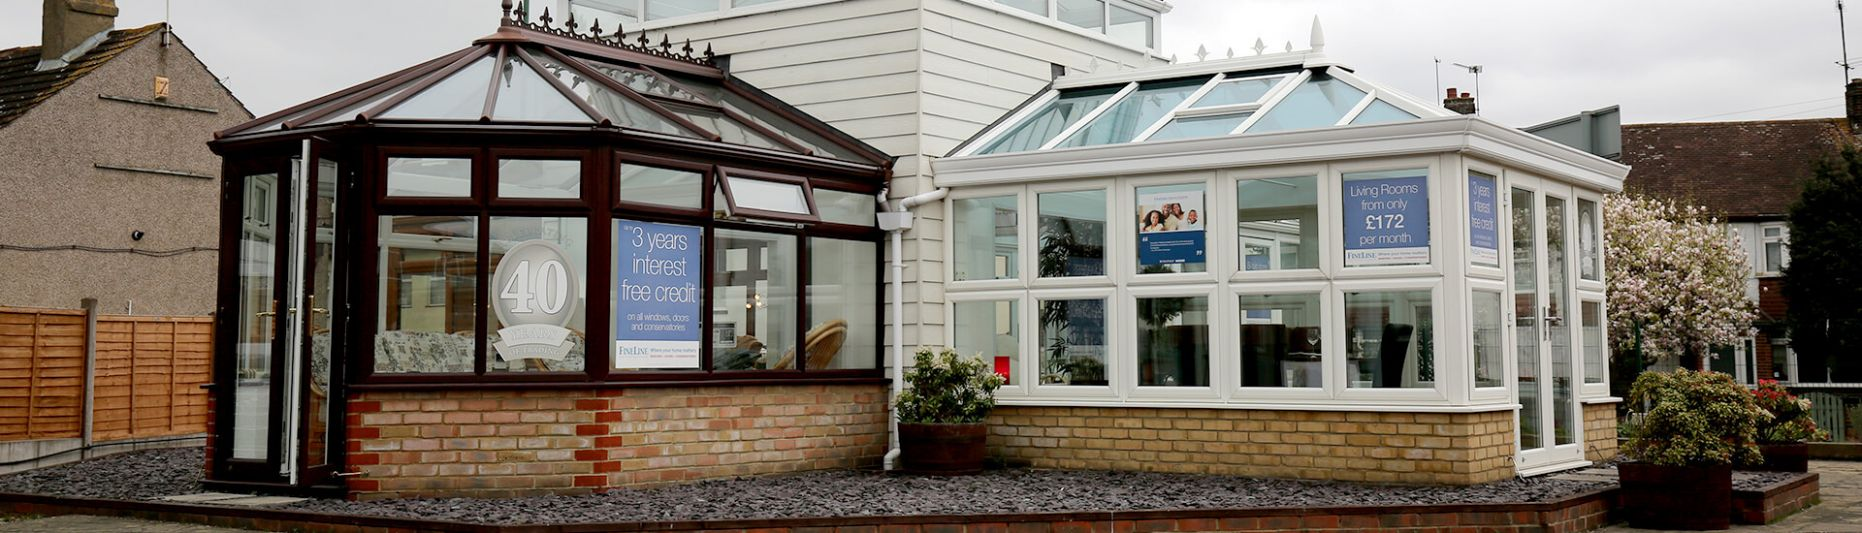 Your conservatory journey with us - Fineline